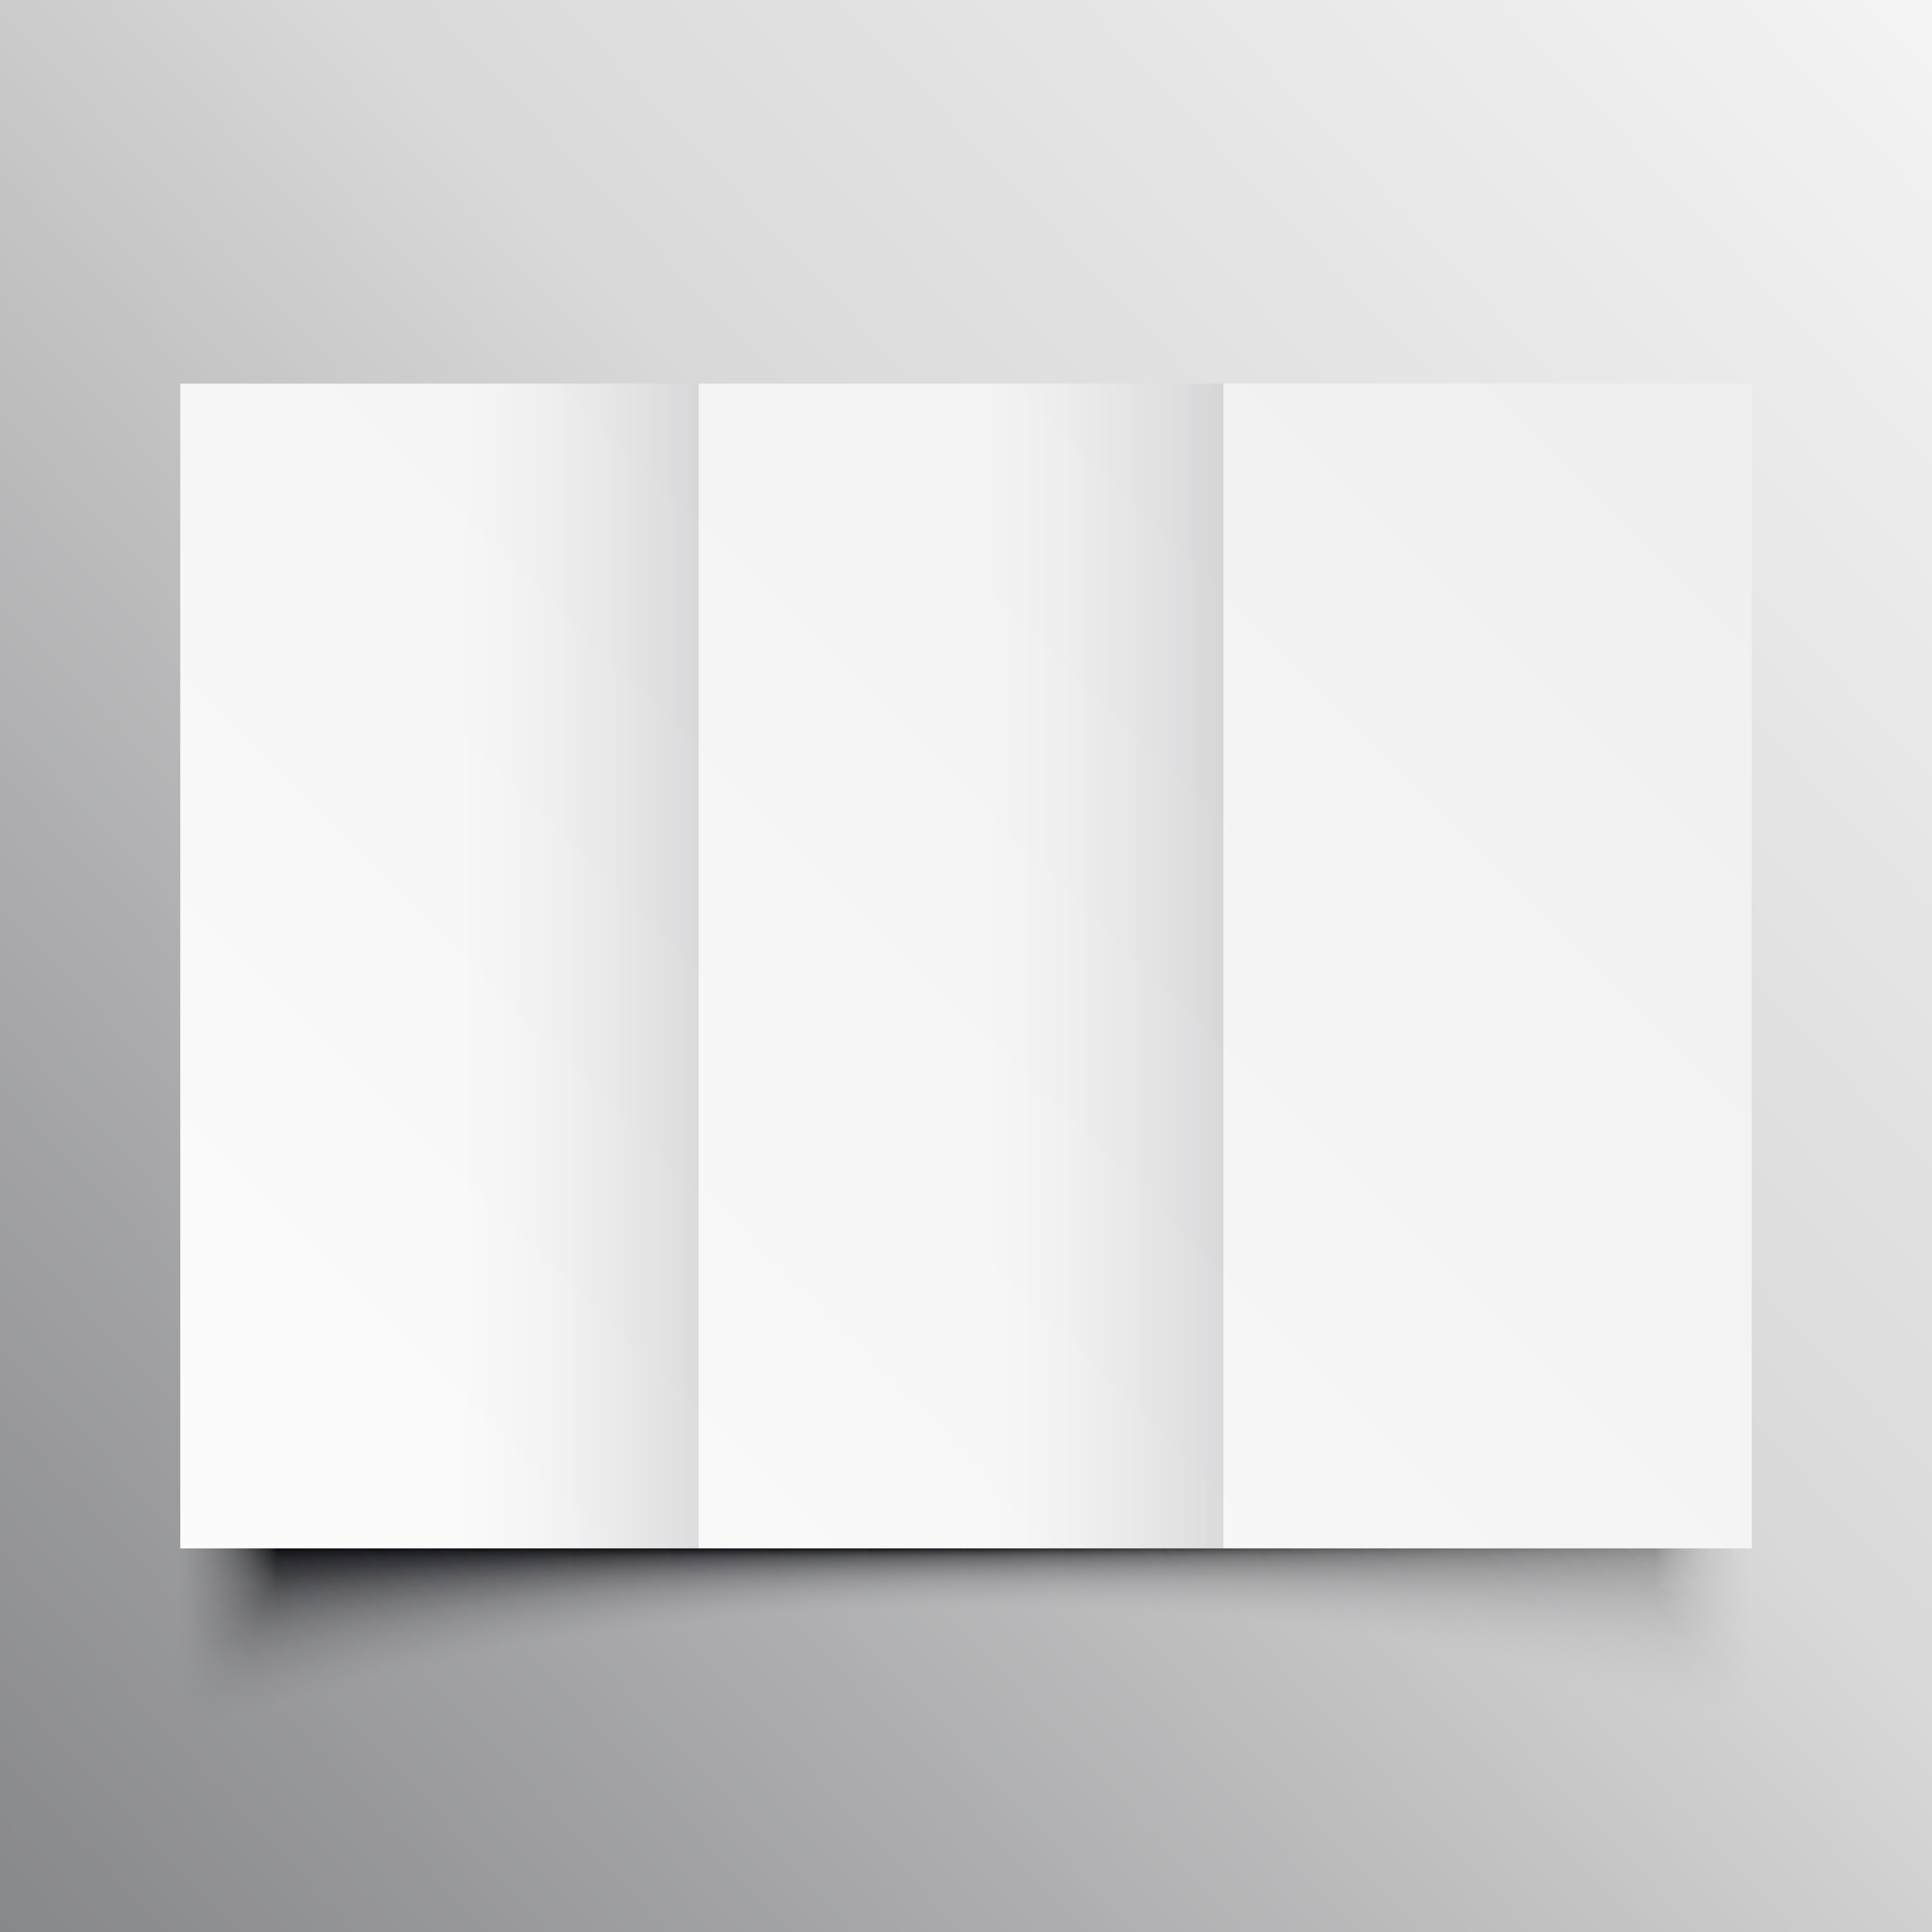 Trifold Brochure Mockup Template Download Free Vector Art Stock - Brochure mockup template